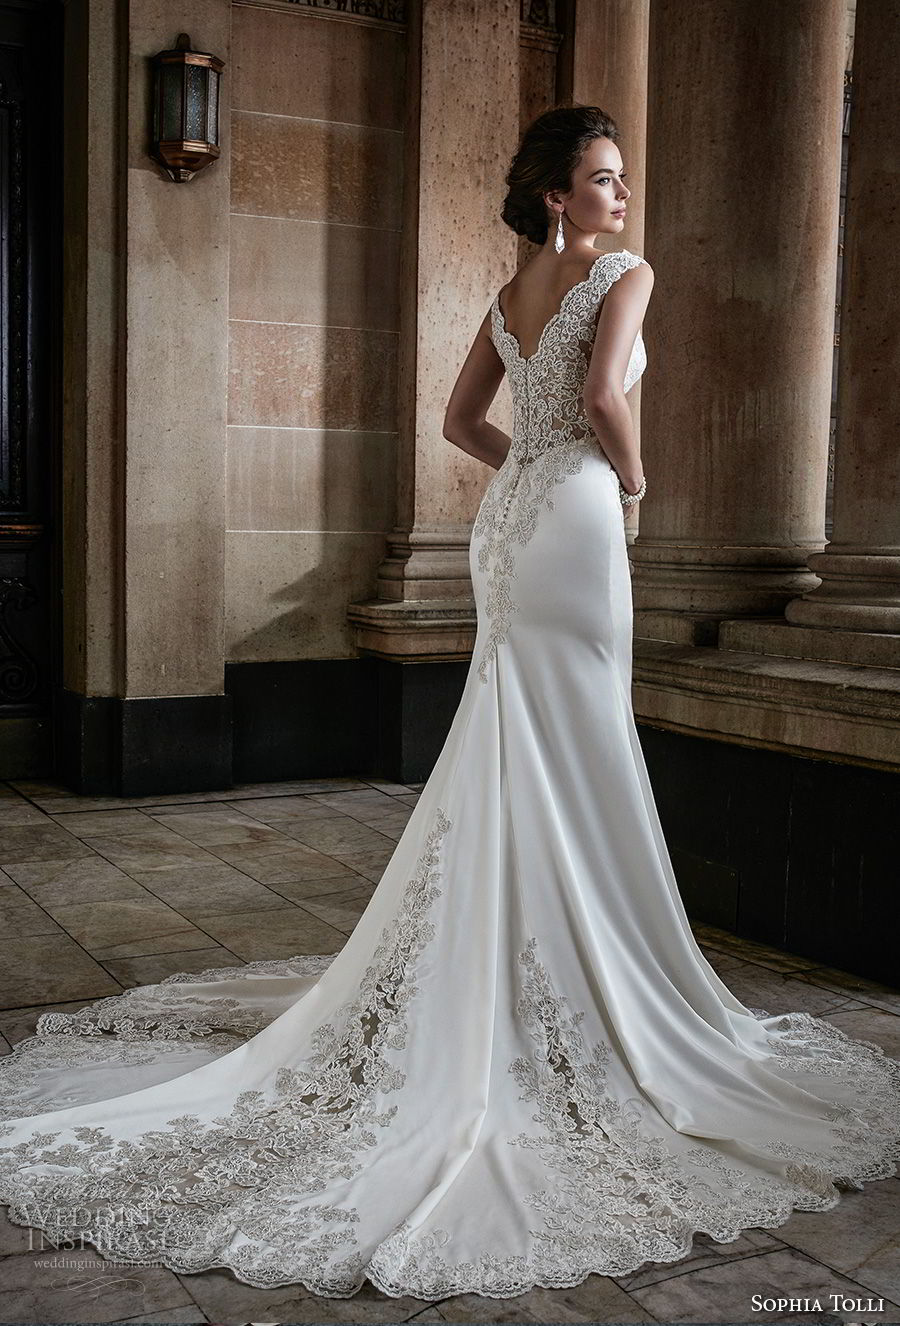 sophia tolli fall 2017 bridal sleeveless thick strap v neck ehavily embellished bodice elegant sheath wedding dress chapel train (29) bv